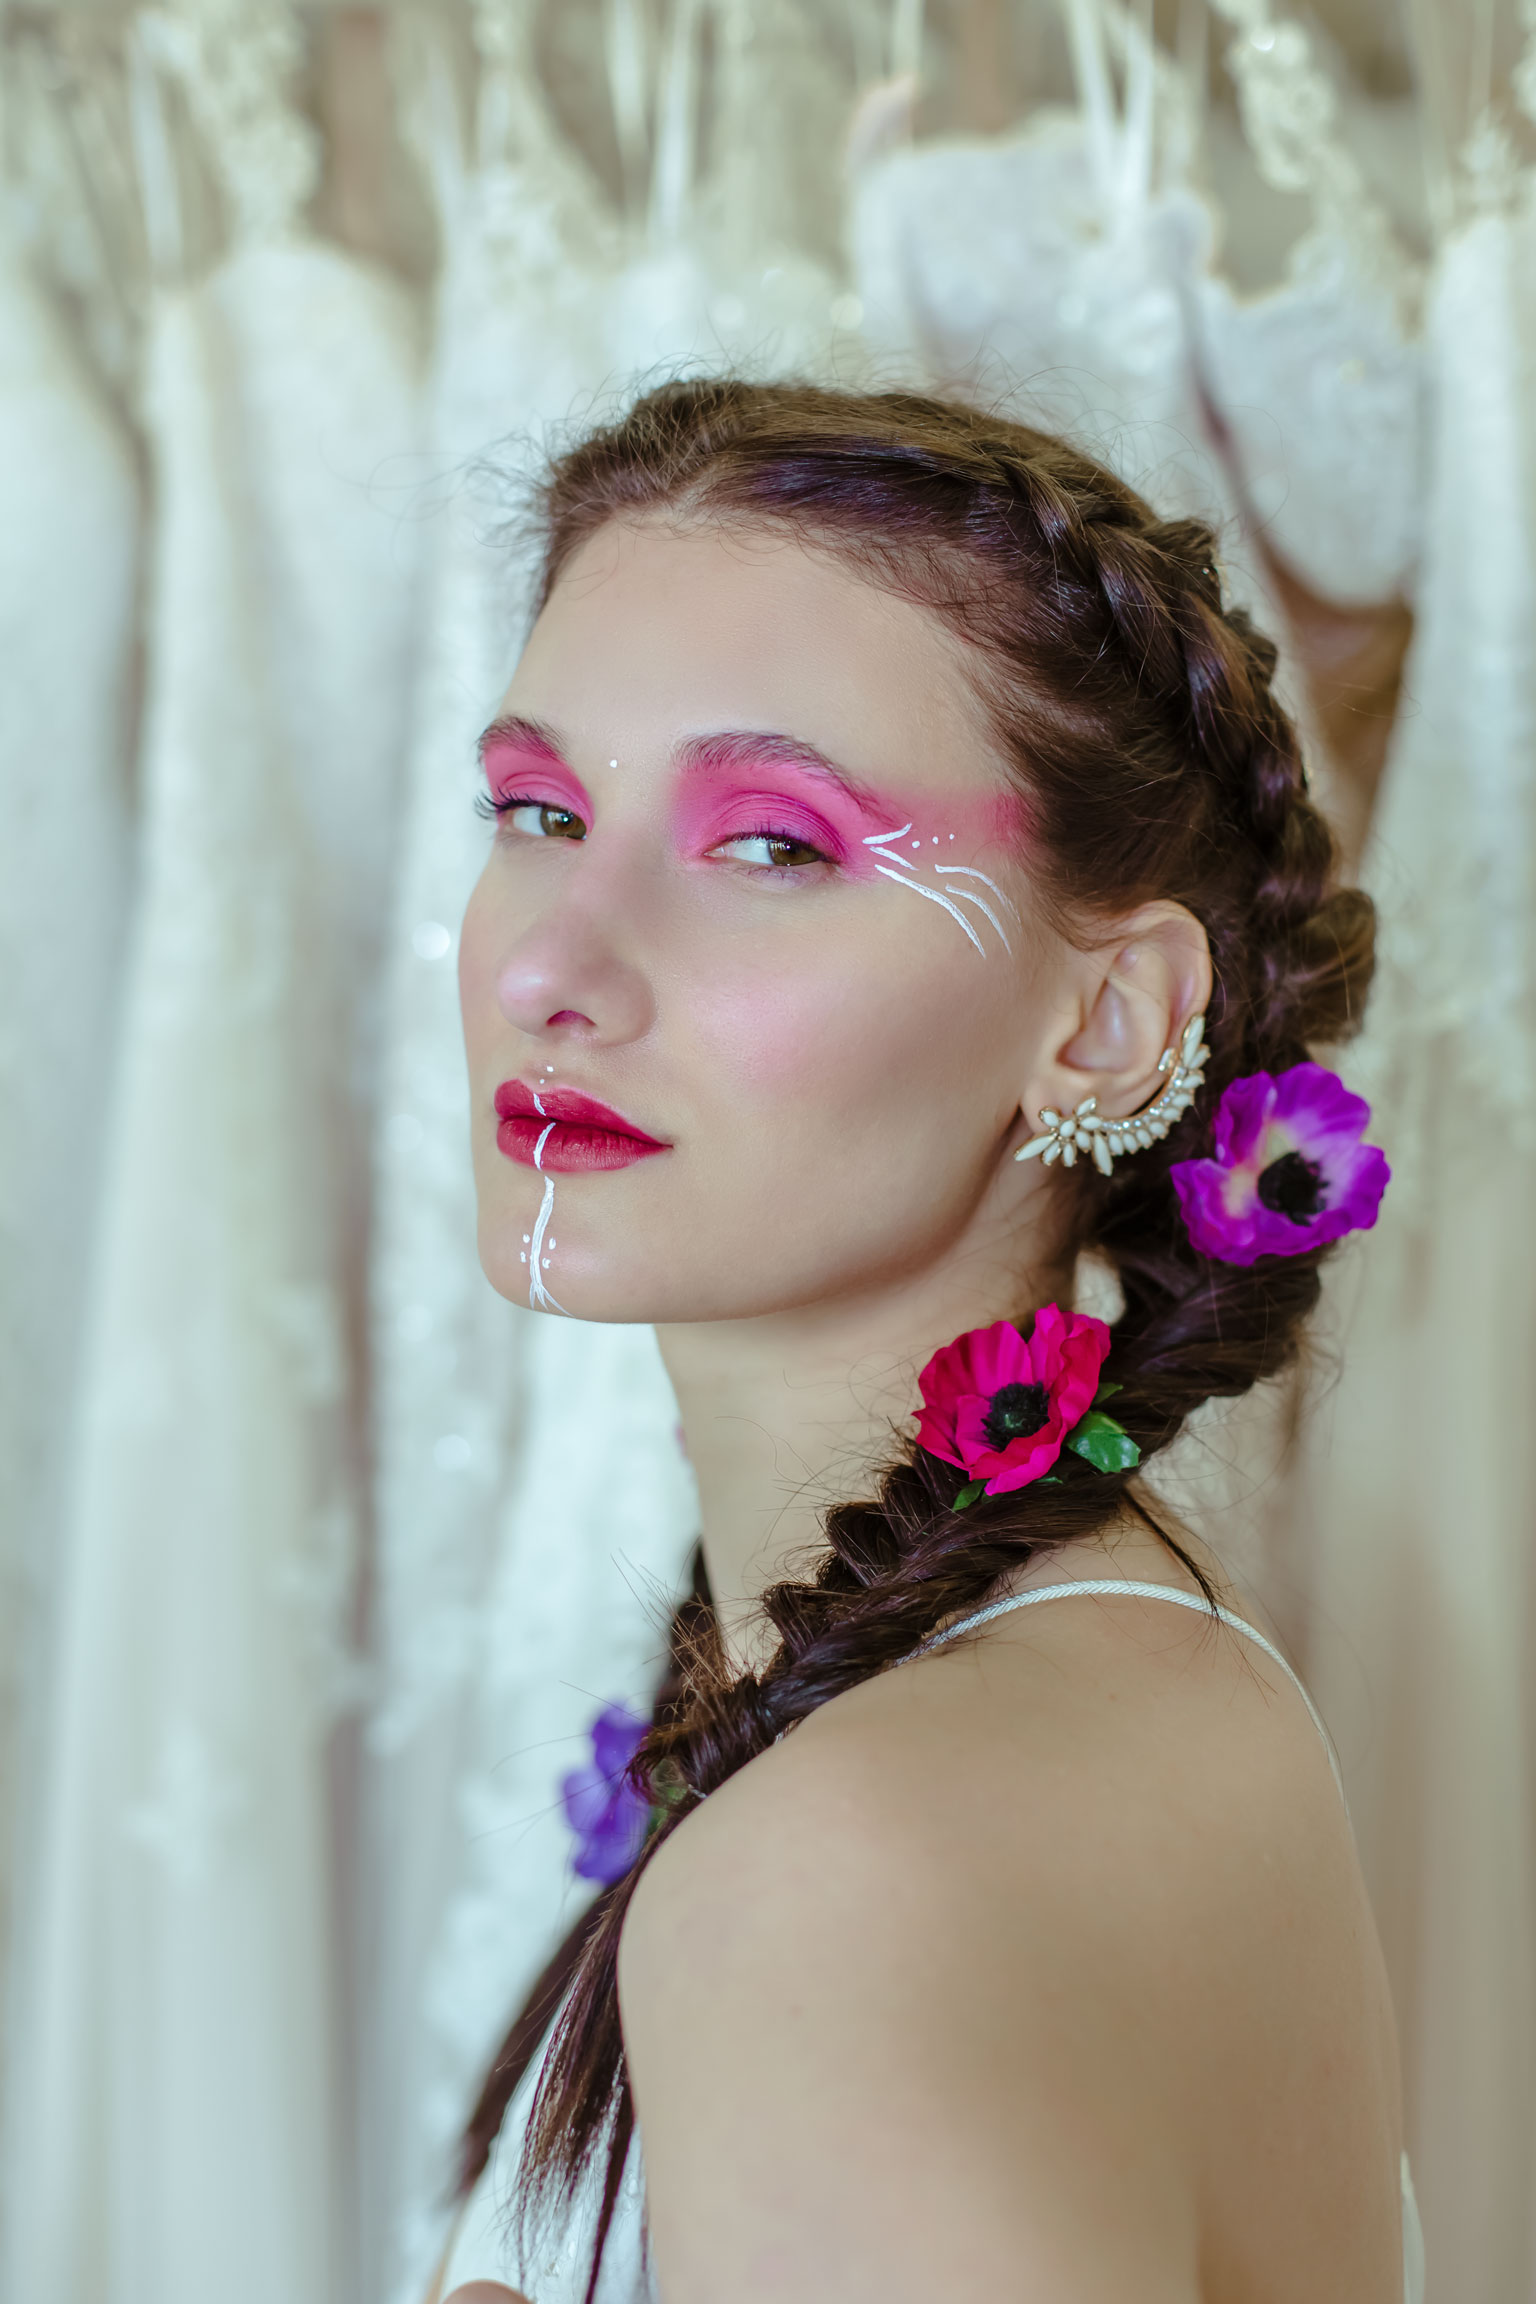 May & Grace Bridal - 3 alternative bridal looks 4 - pink and purple - bold make up